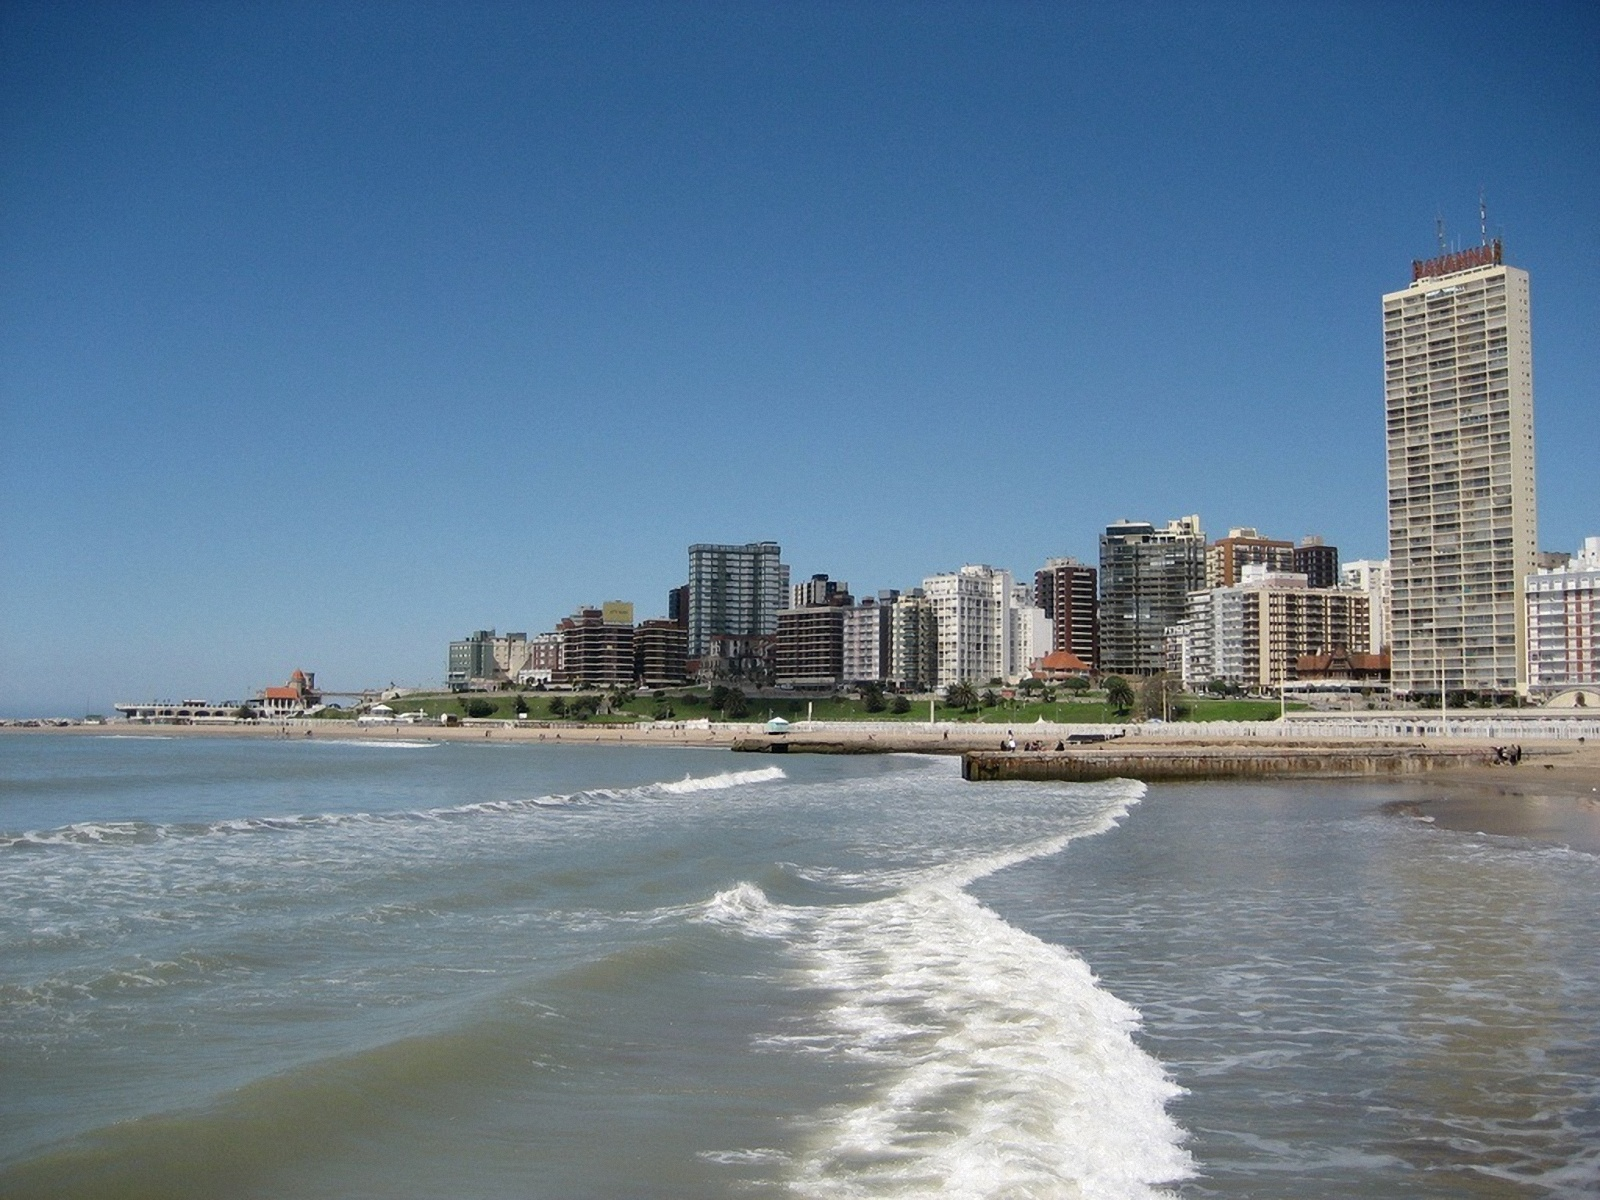 mar del plata girls Experience mar del plata as if you were there right now • explore the region • explore nearby attractions • explore nearby activities.